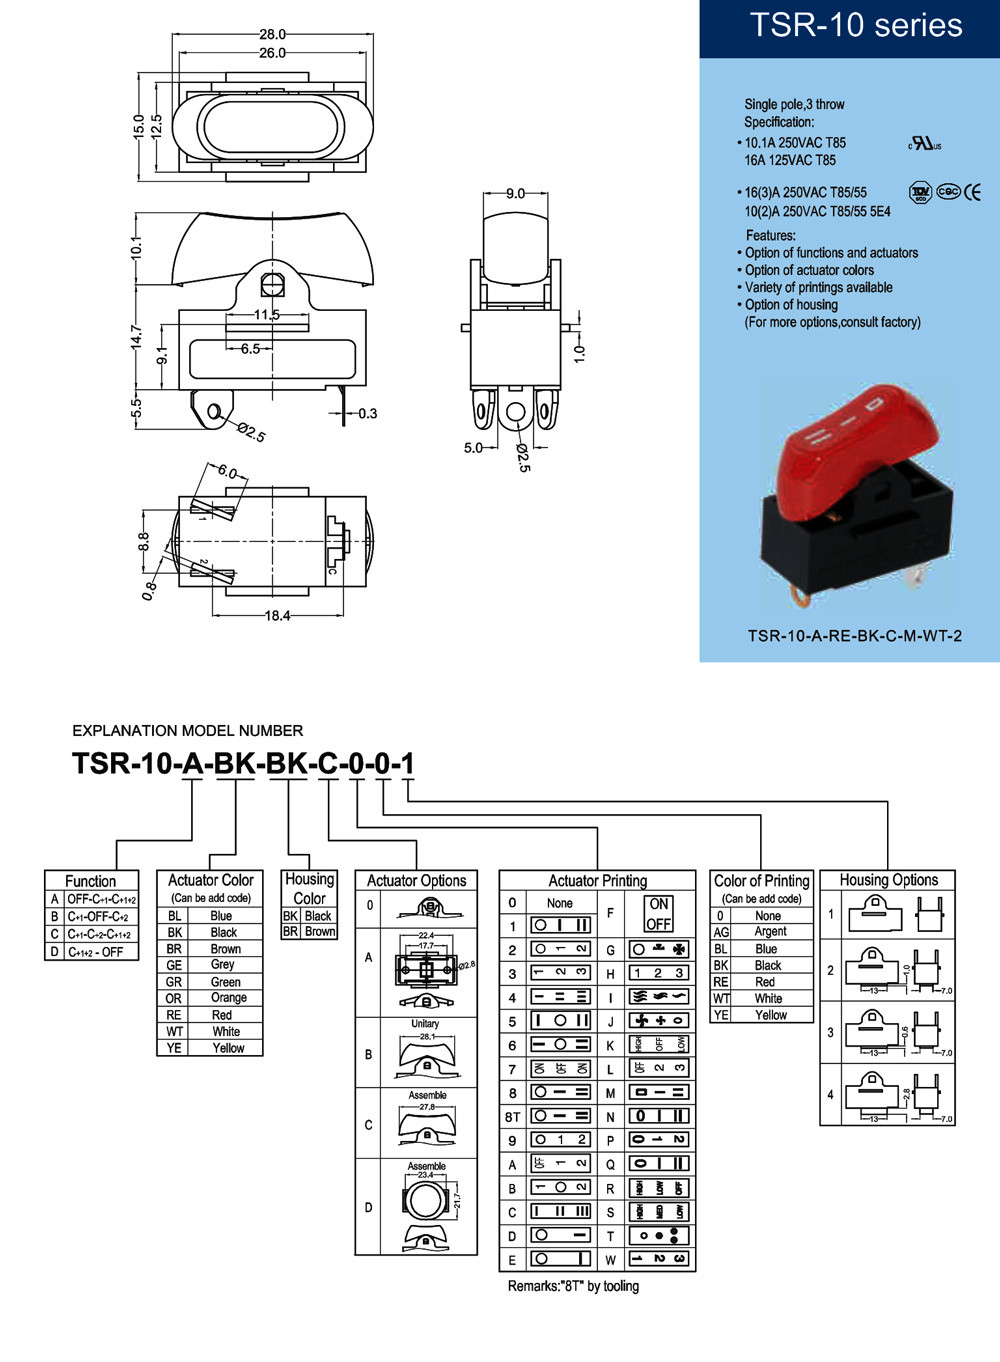 hair dryer rocker switch UL CUL ETL VDE TUV CQC certificate